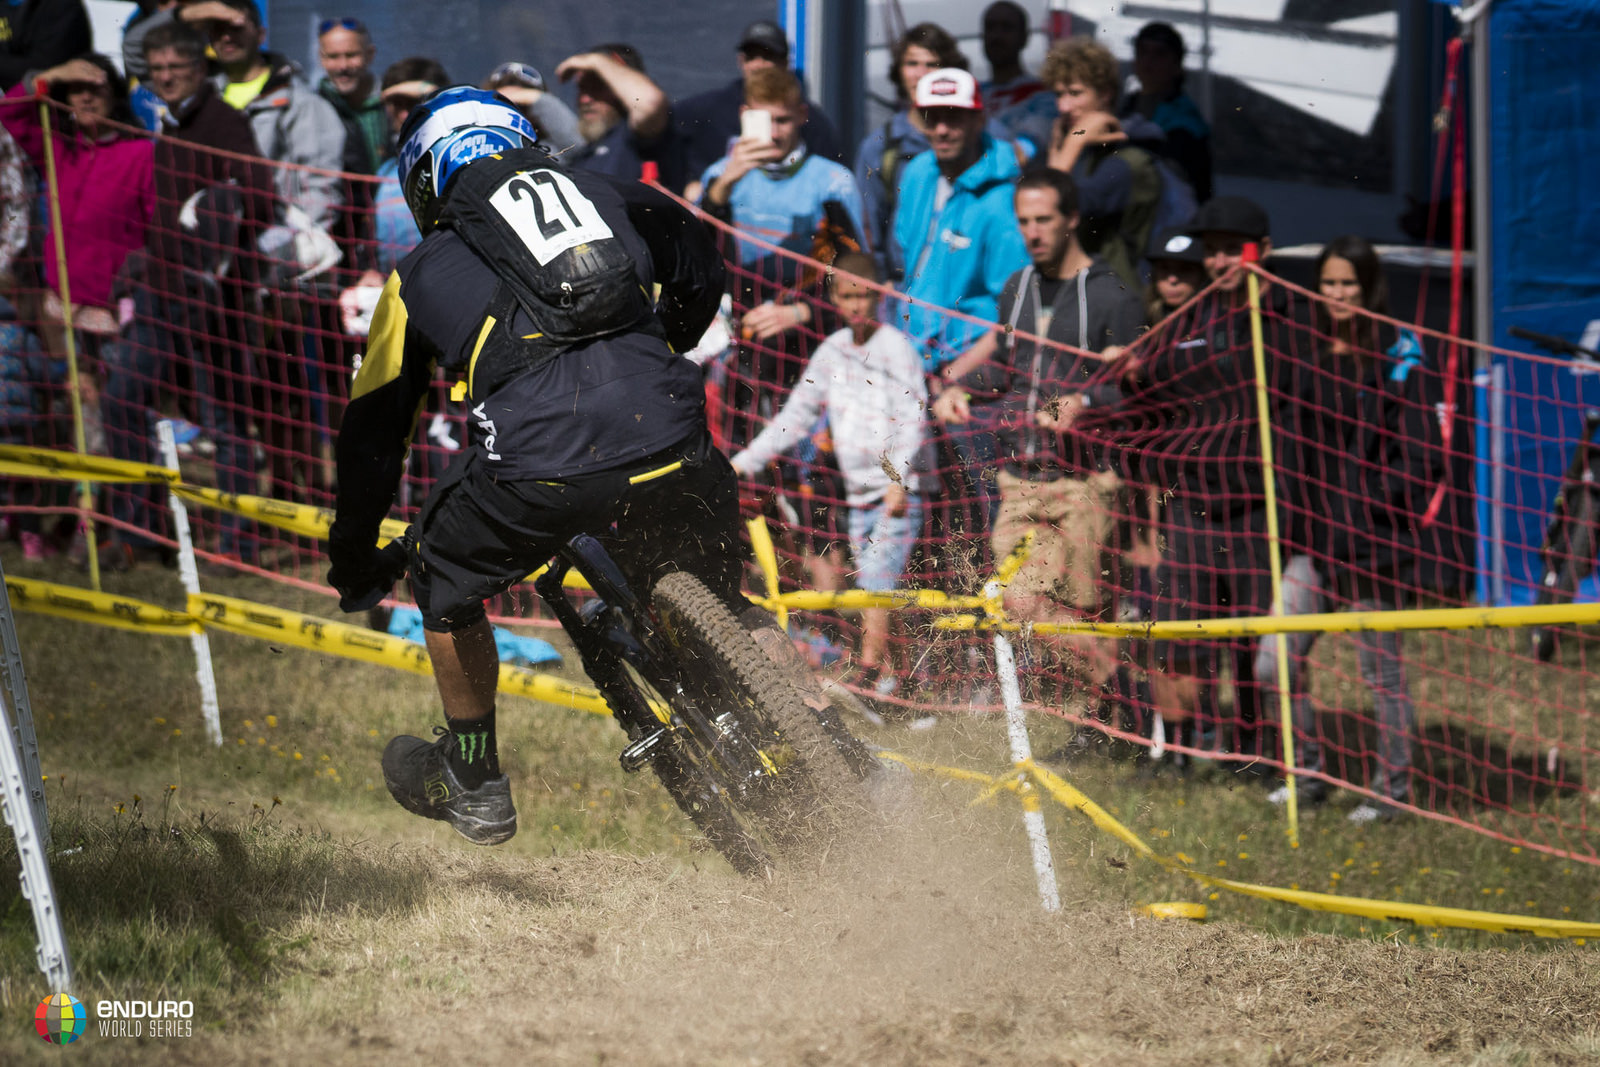 Sam Hill goes flat out foot out on his way to EWS win No. 1.